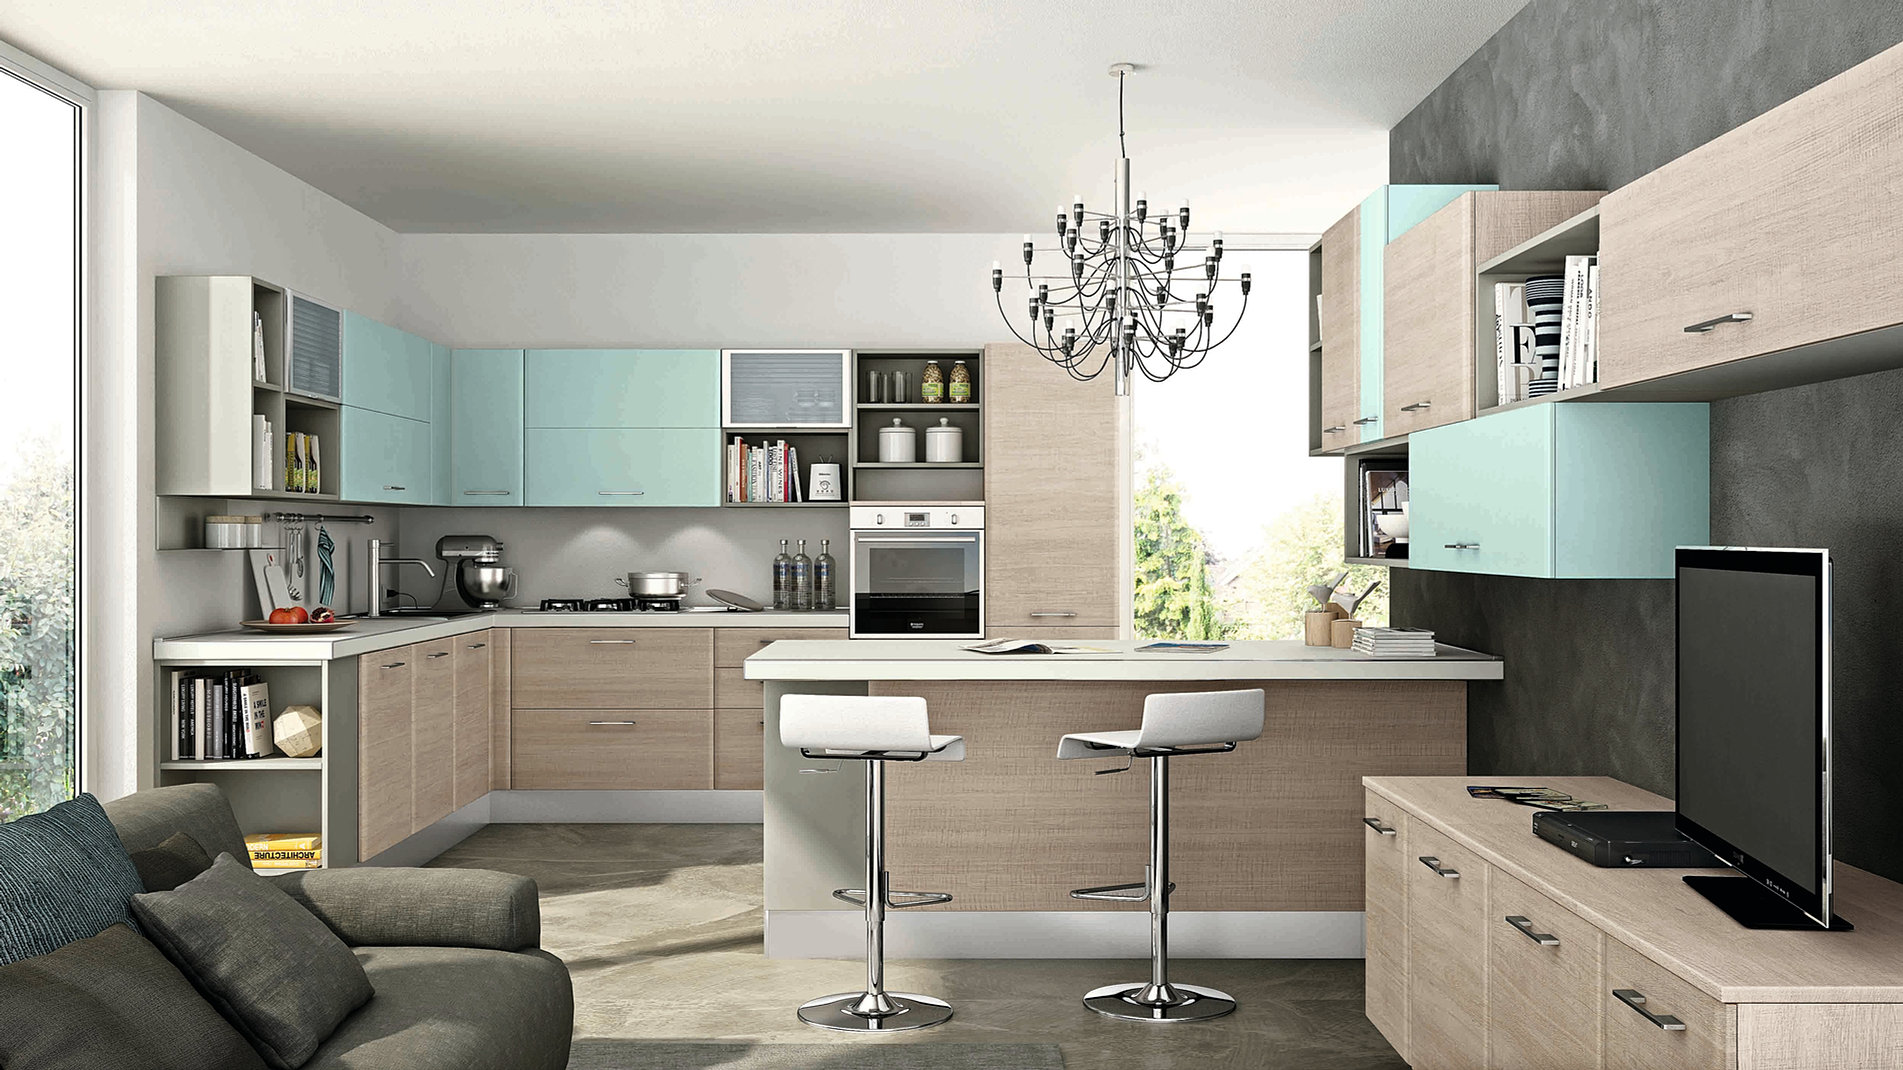 Cucine in muratura moderne colorate lw85 regardsdefemmes - Cucine moderne colorate ...